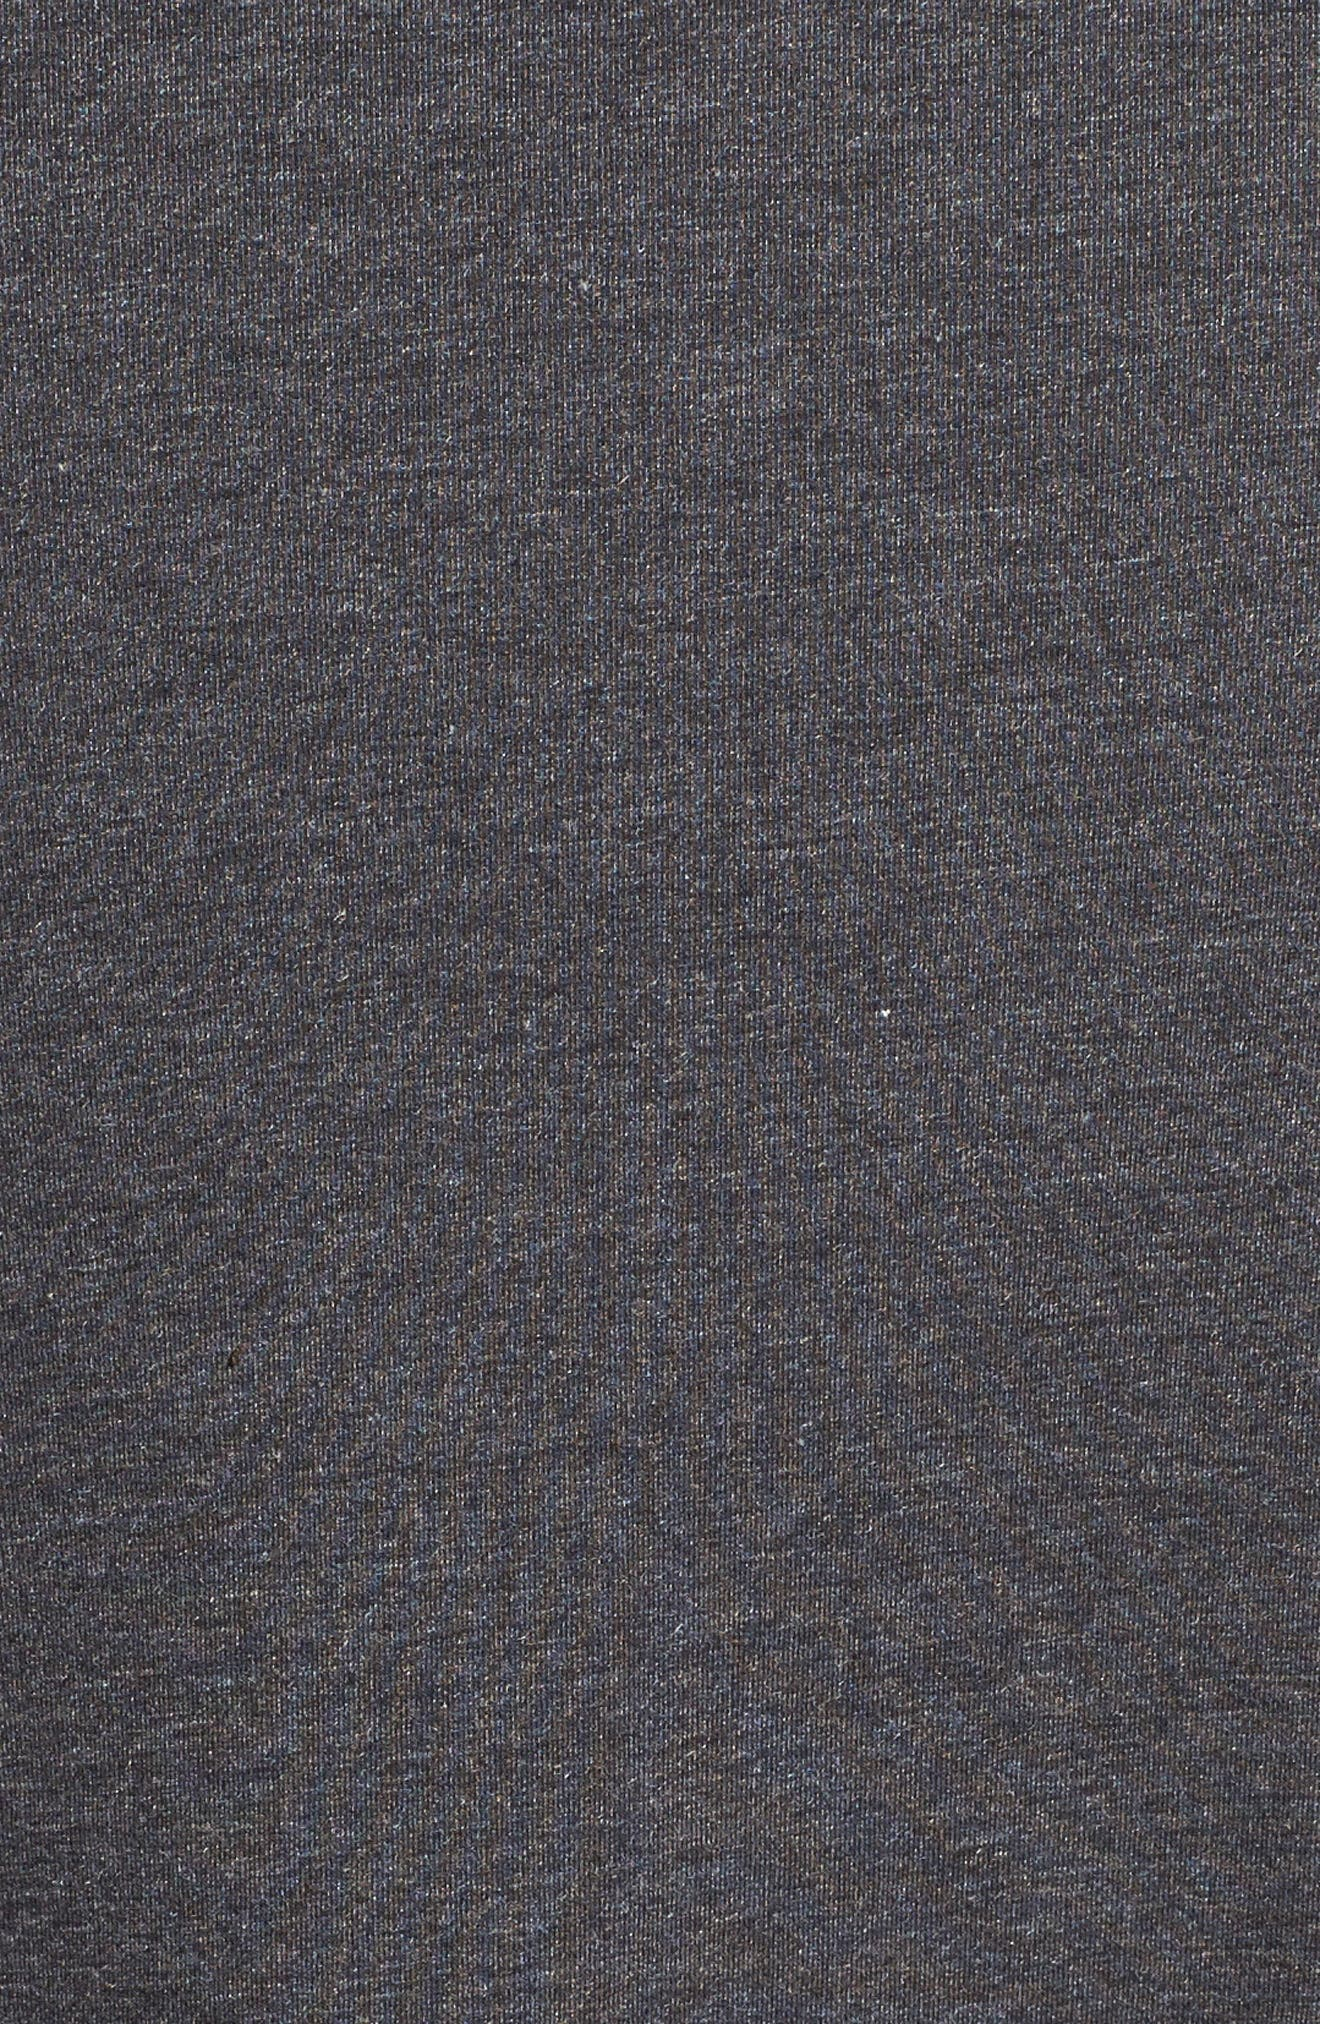 'Sportstyle' Charged Cotton<sup>®</sup> Loose Fit Logo T-Shirt,                             Alternate thumbnail 2, color,                             BLACK/ STEEL